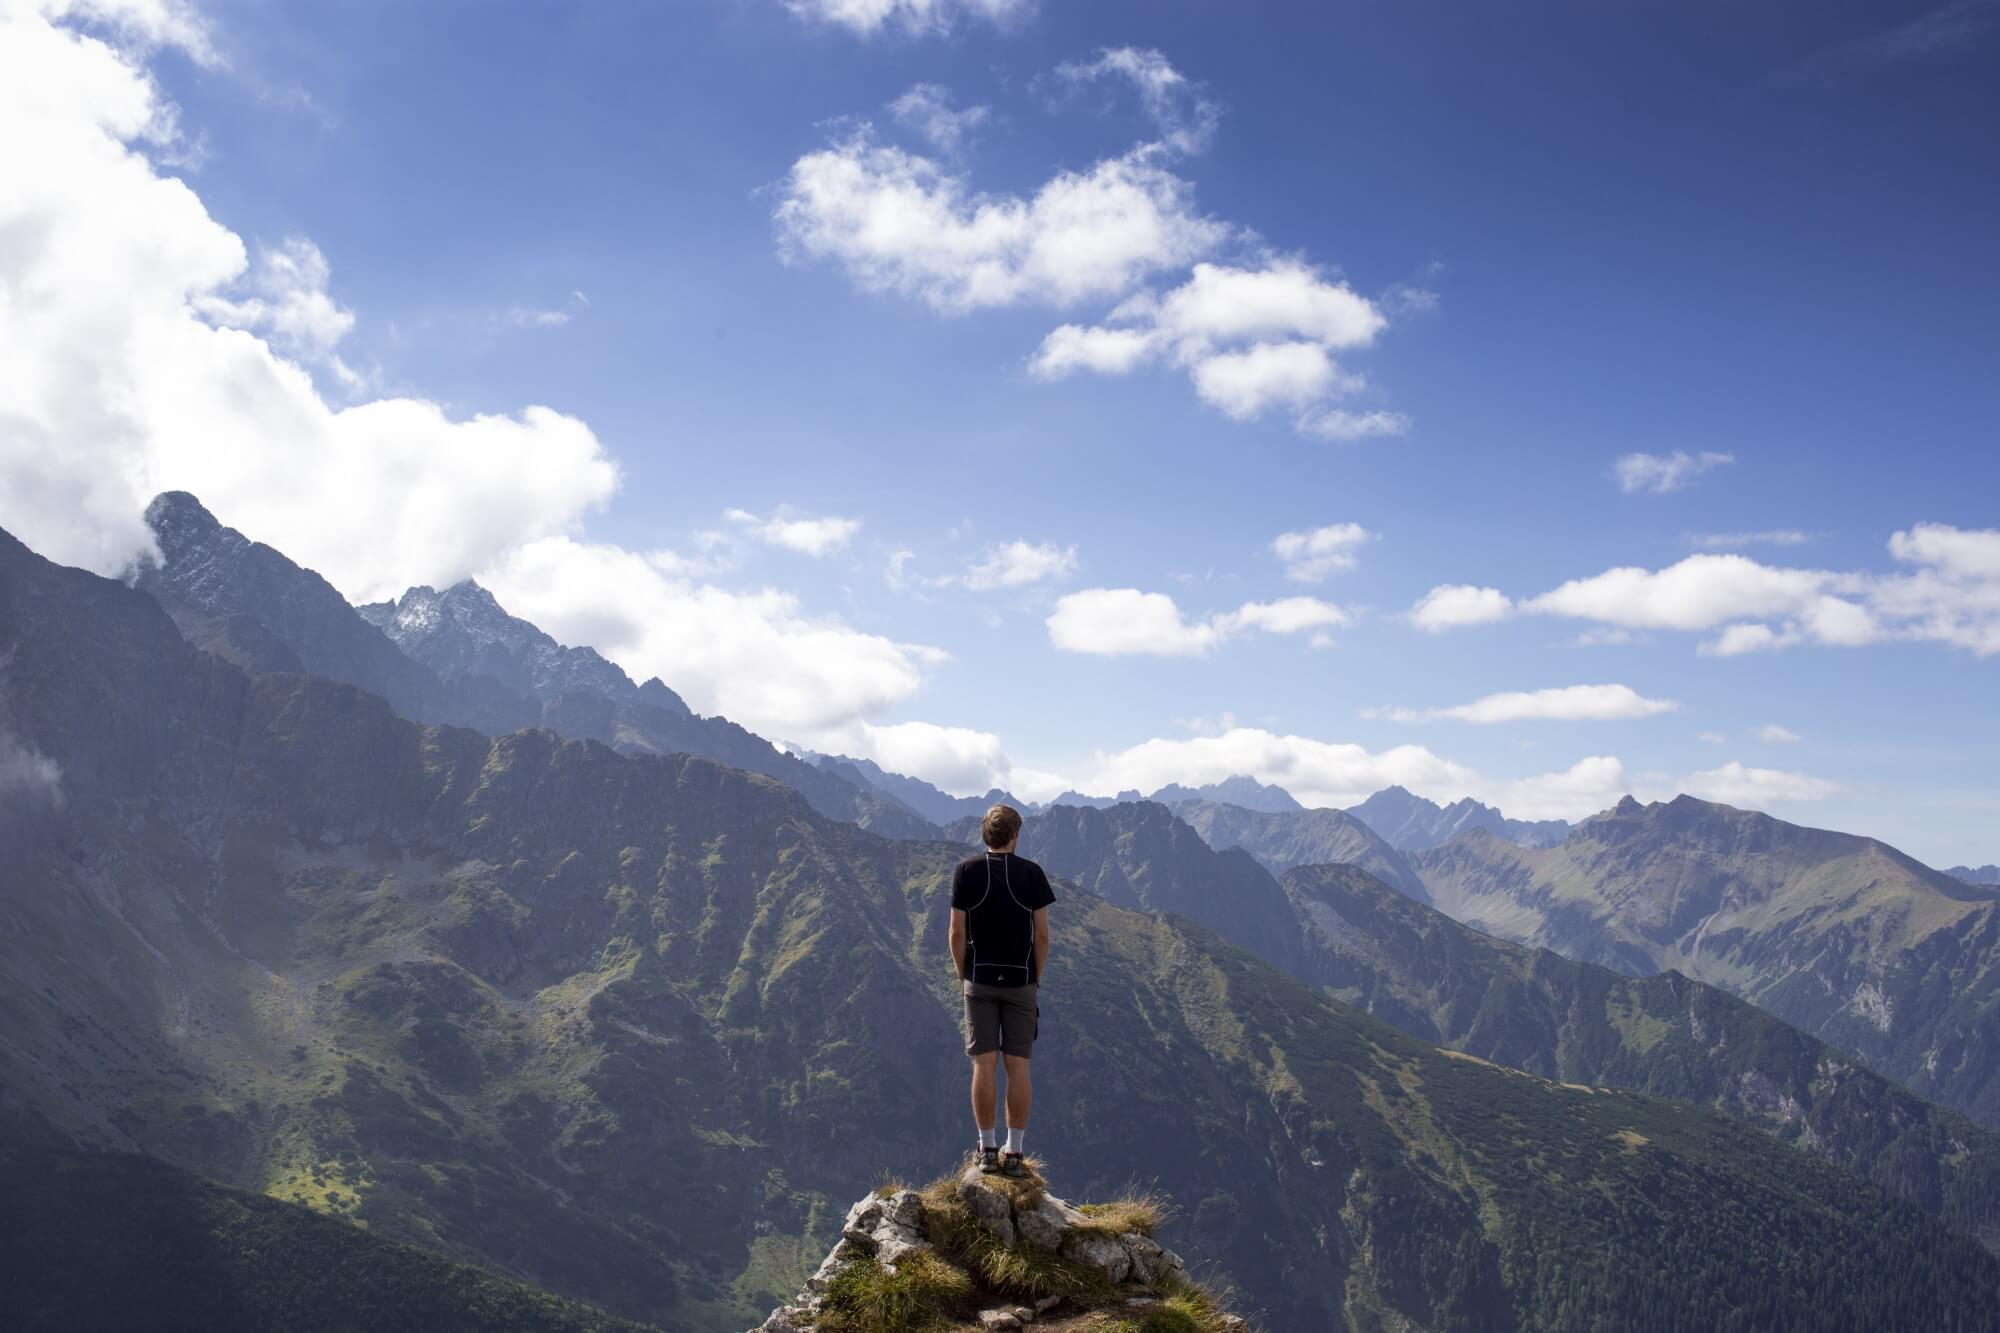 Man standing on point of a mountain overlooking nature with a cloudy sky in the background